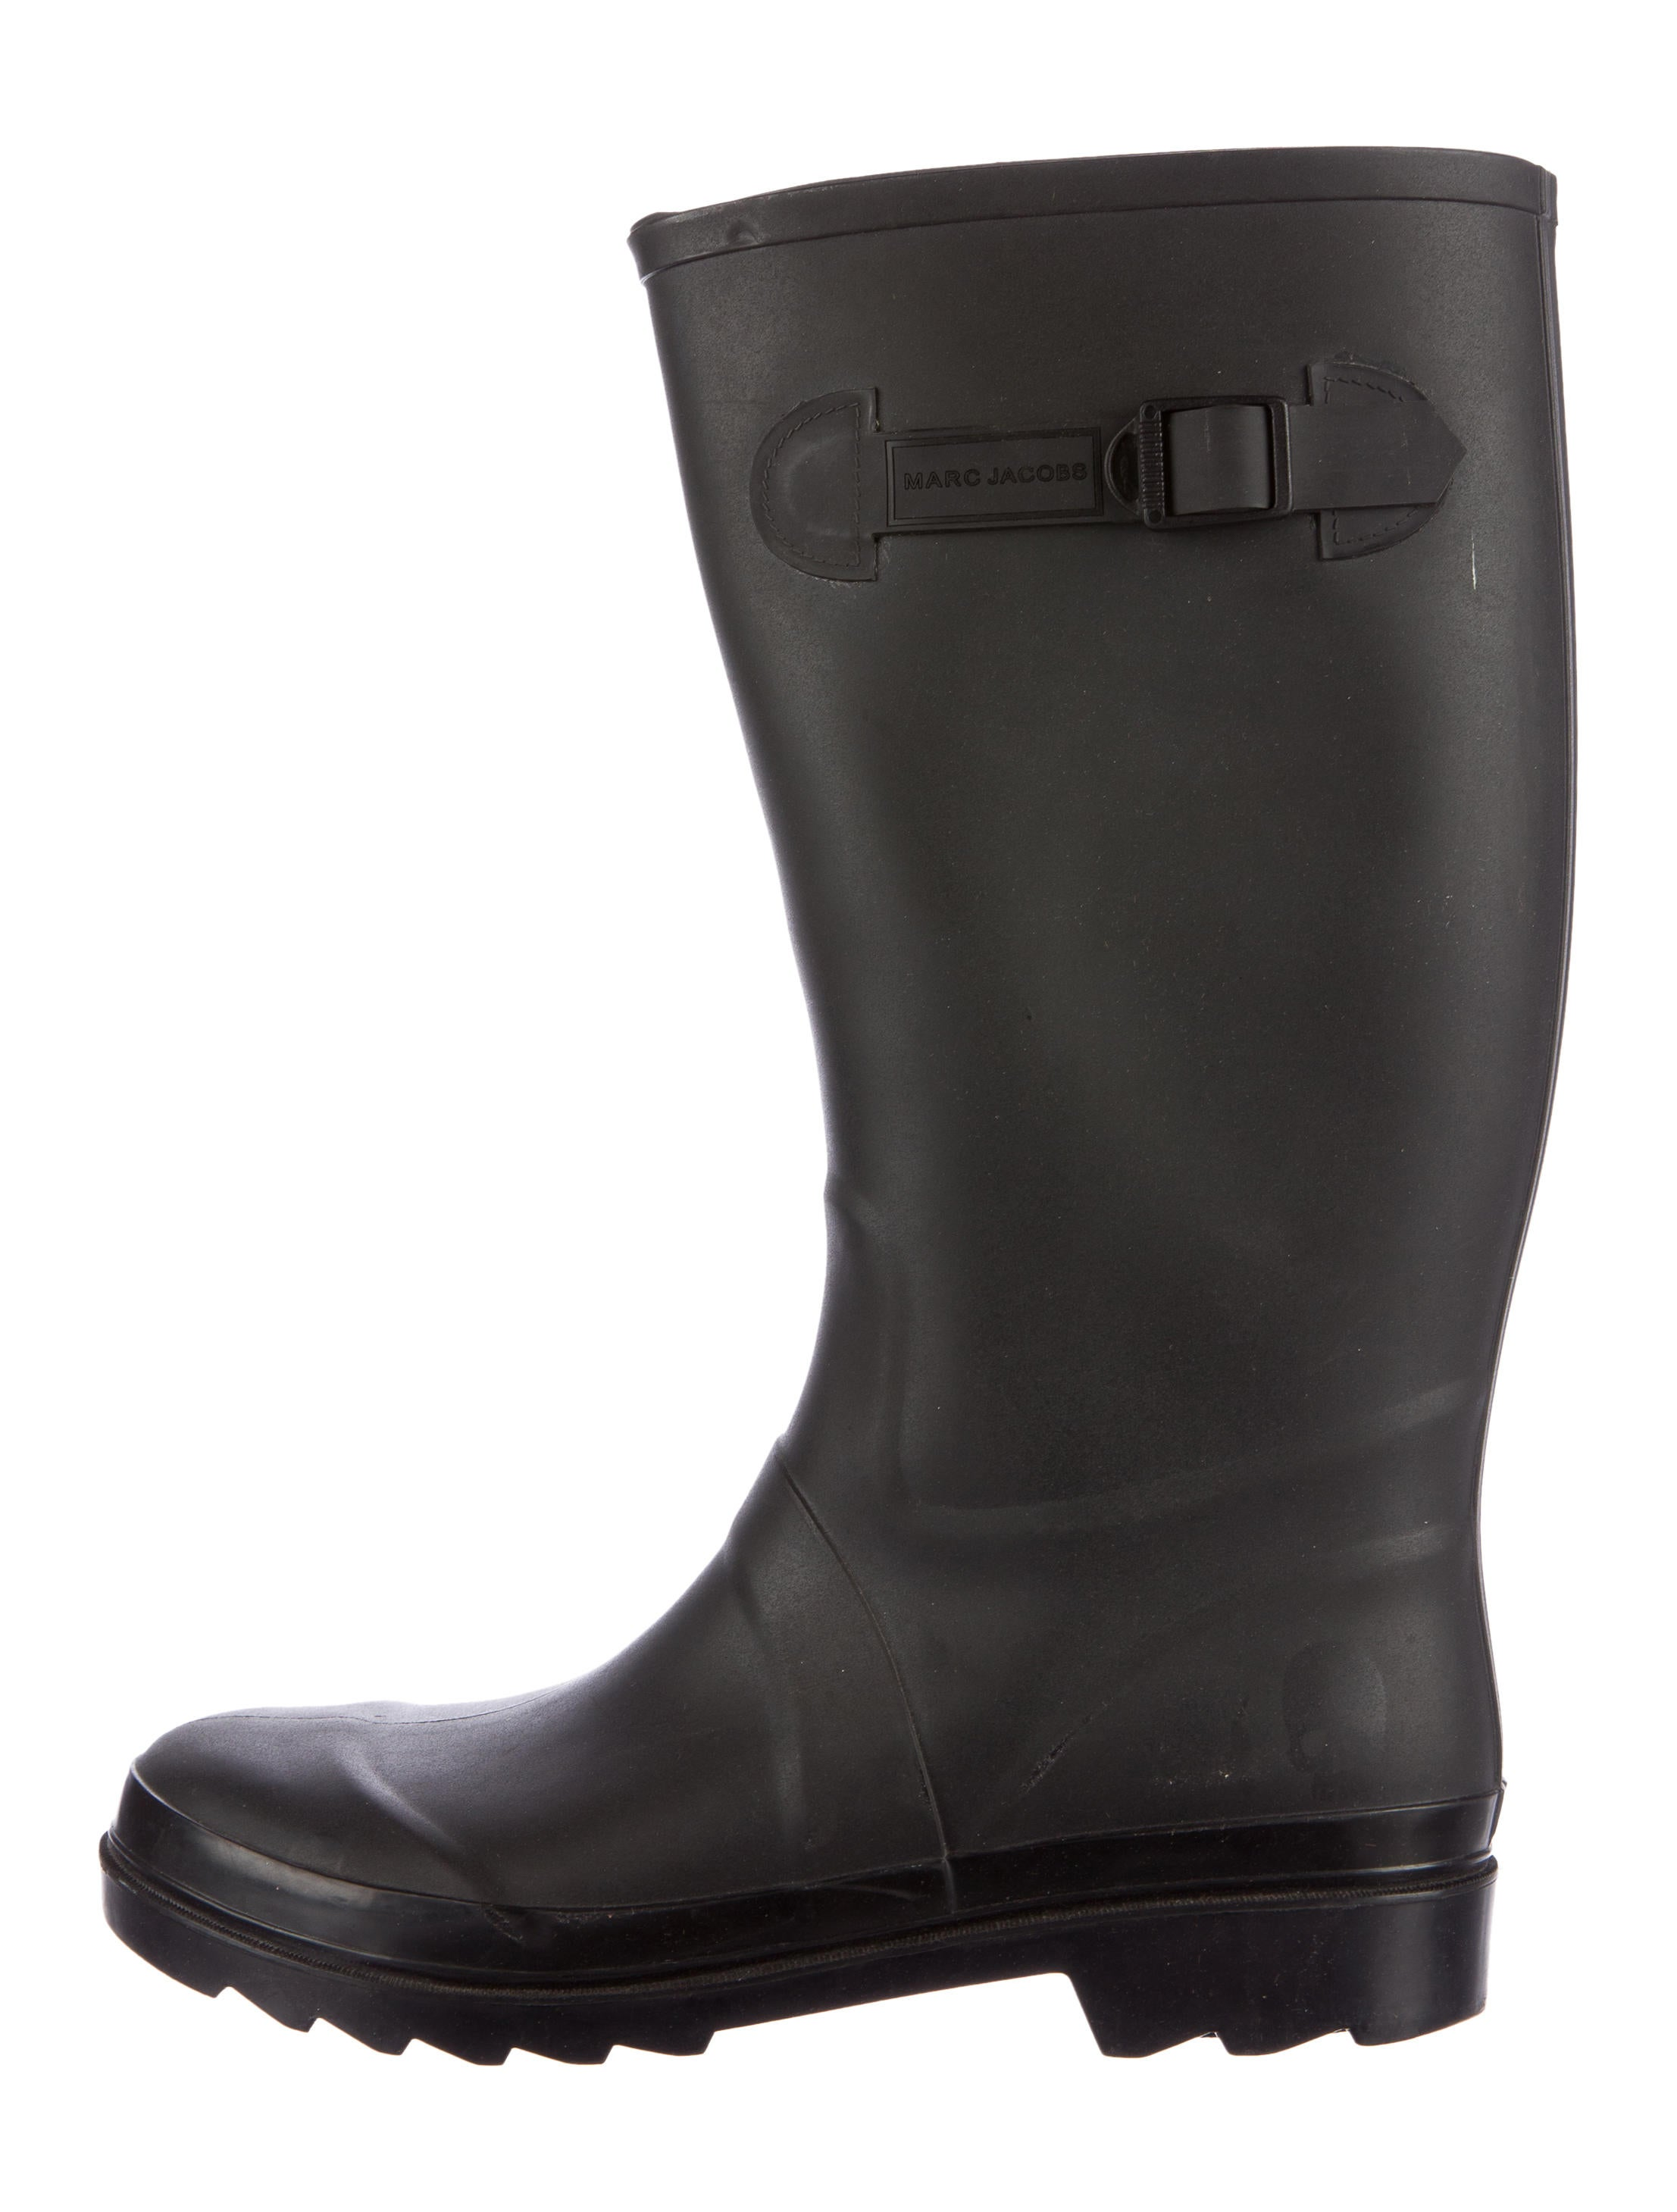 Marc by Marc Jacobs Mid-Calf Rain Boots cheap 2014 new cheapest price for sale good selling online clearance brand new unisex qSNOqJ1rc